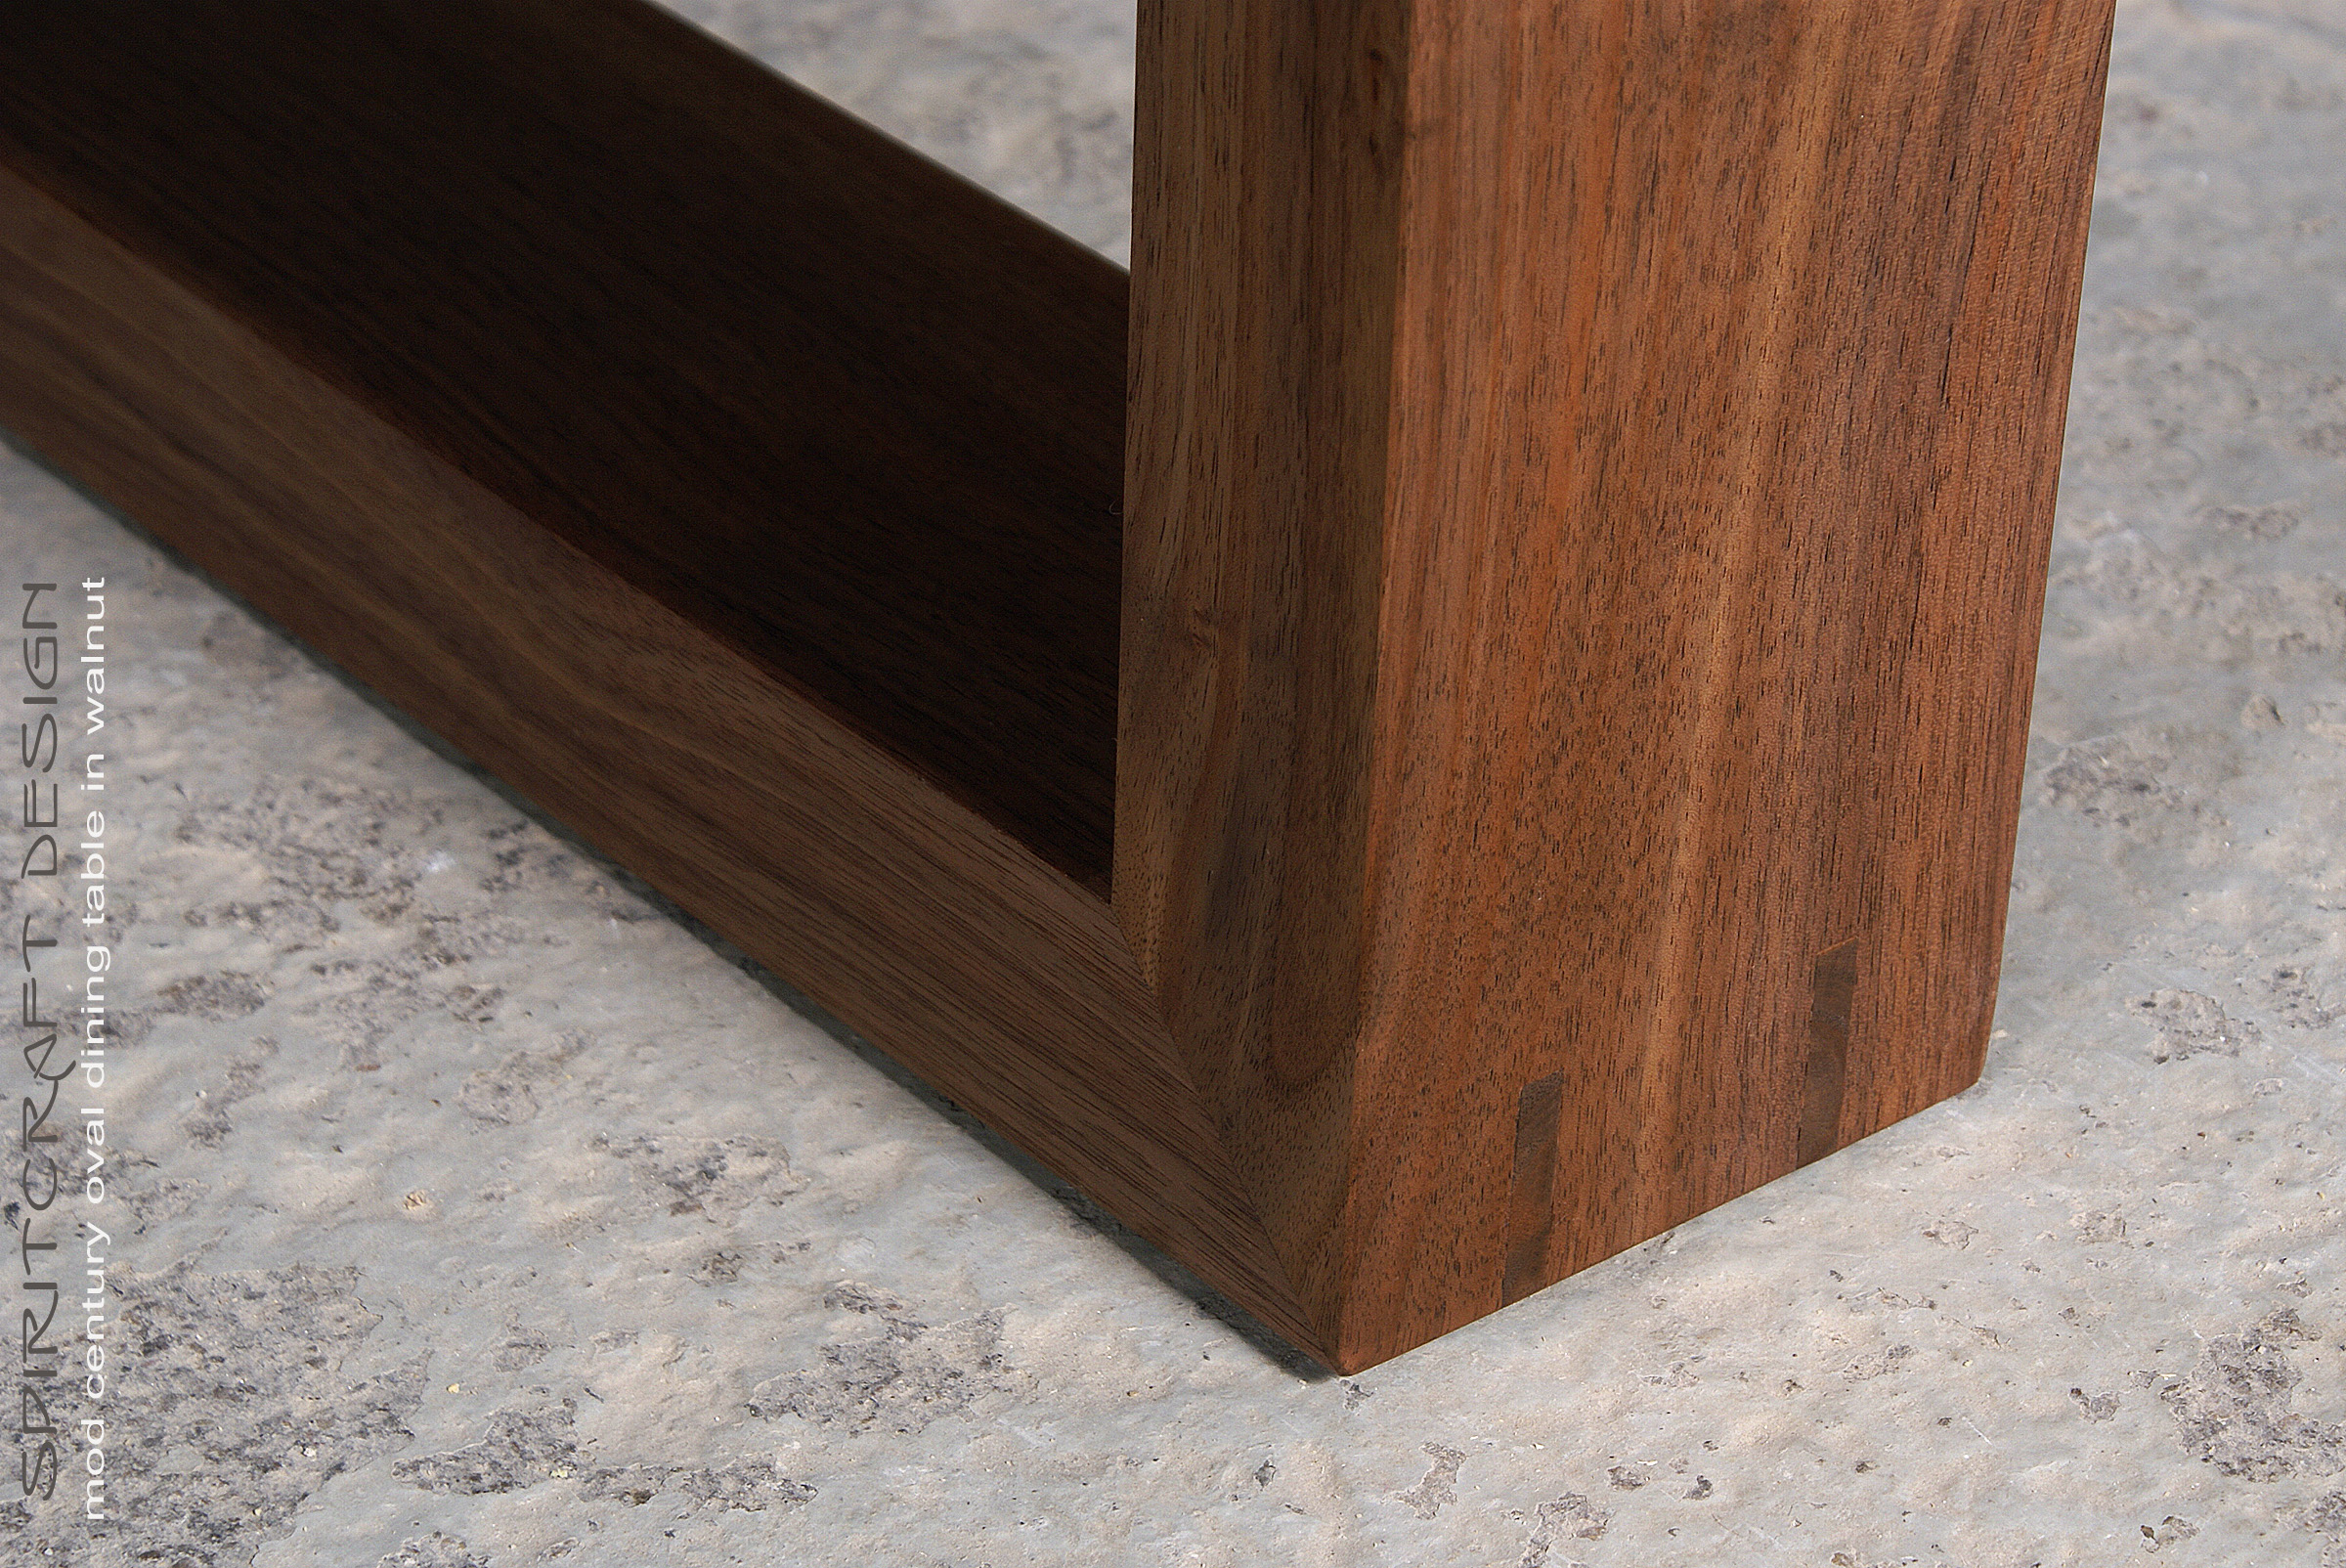 Timeless Design meets Enduring Quality in a Modern Walnut Dining Table